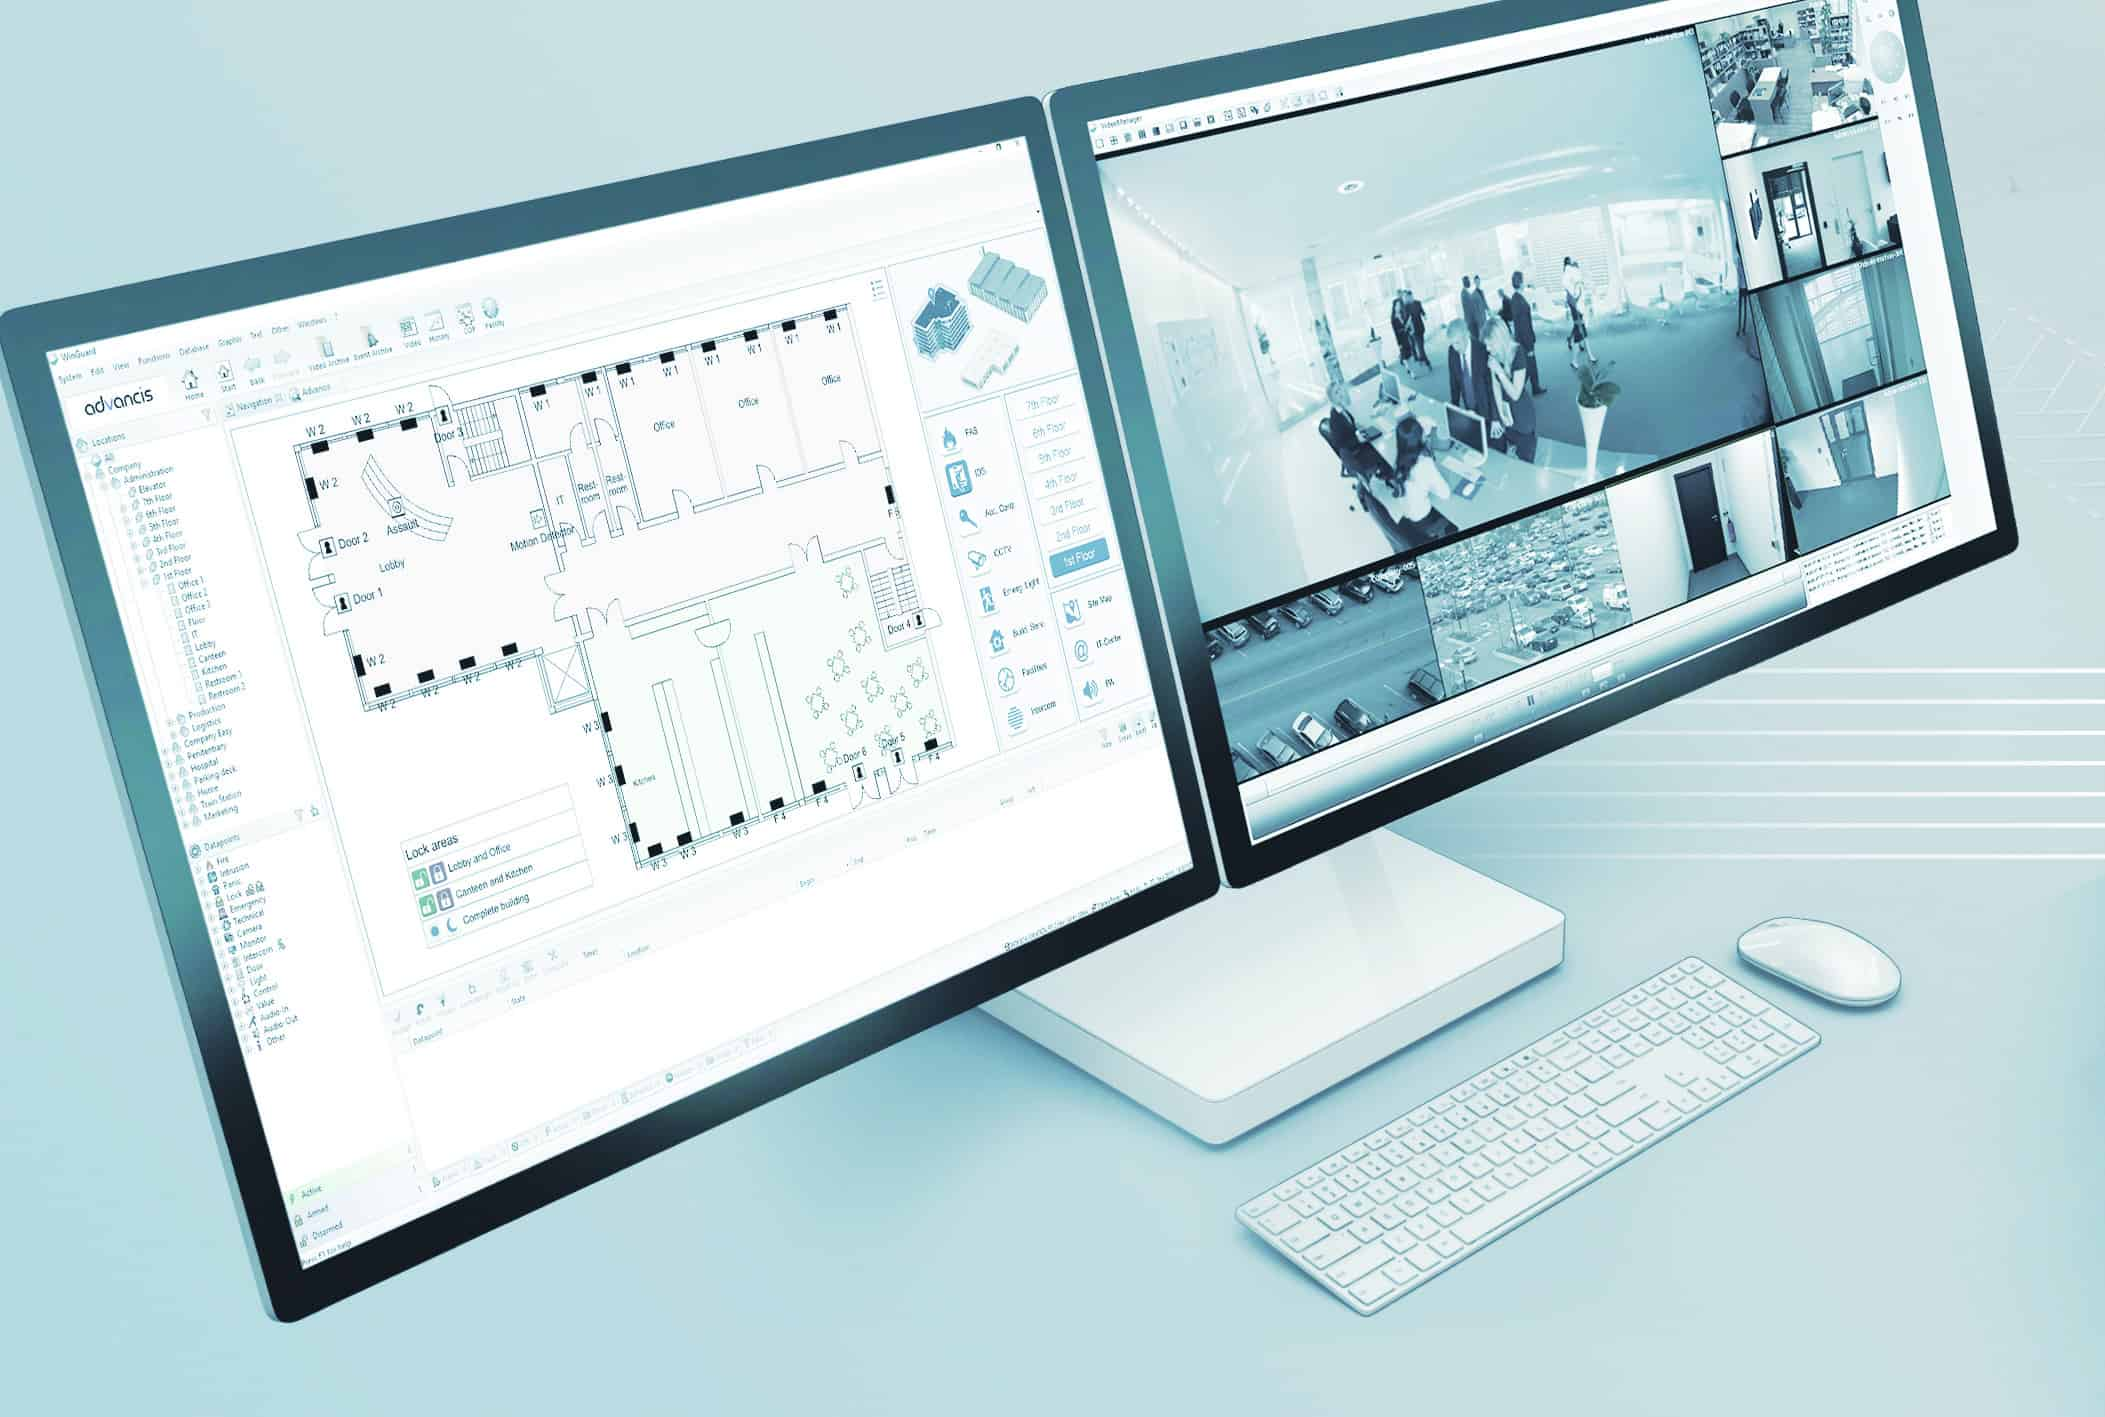 Systems Integration and Engineering deploys a single platform that simplifies operations